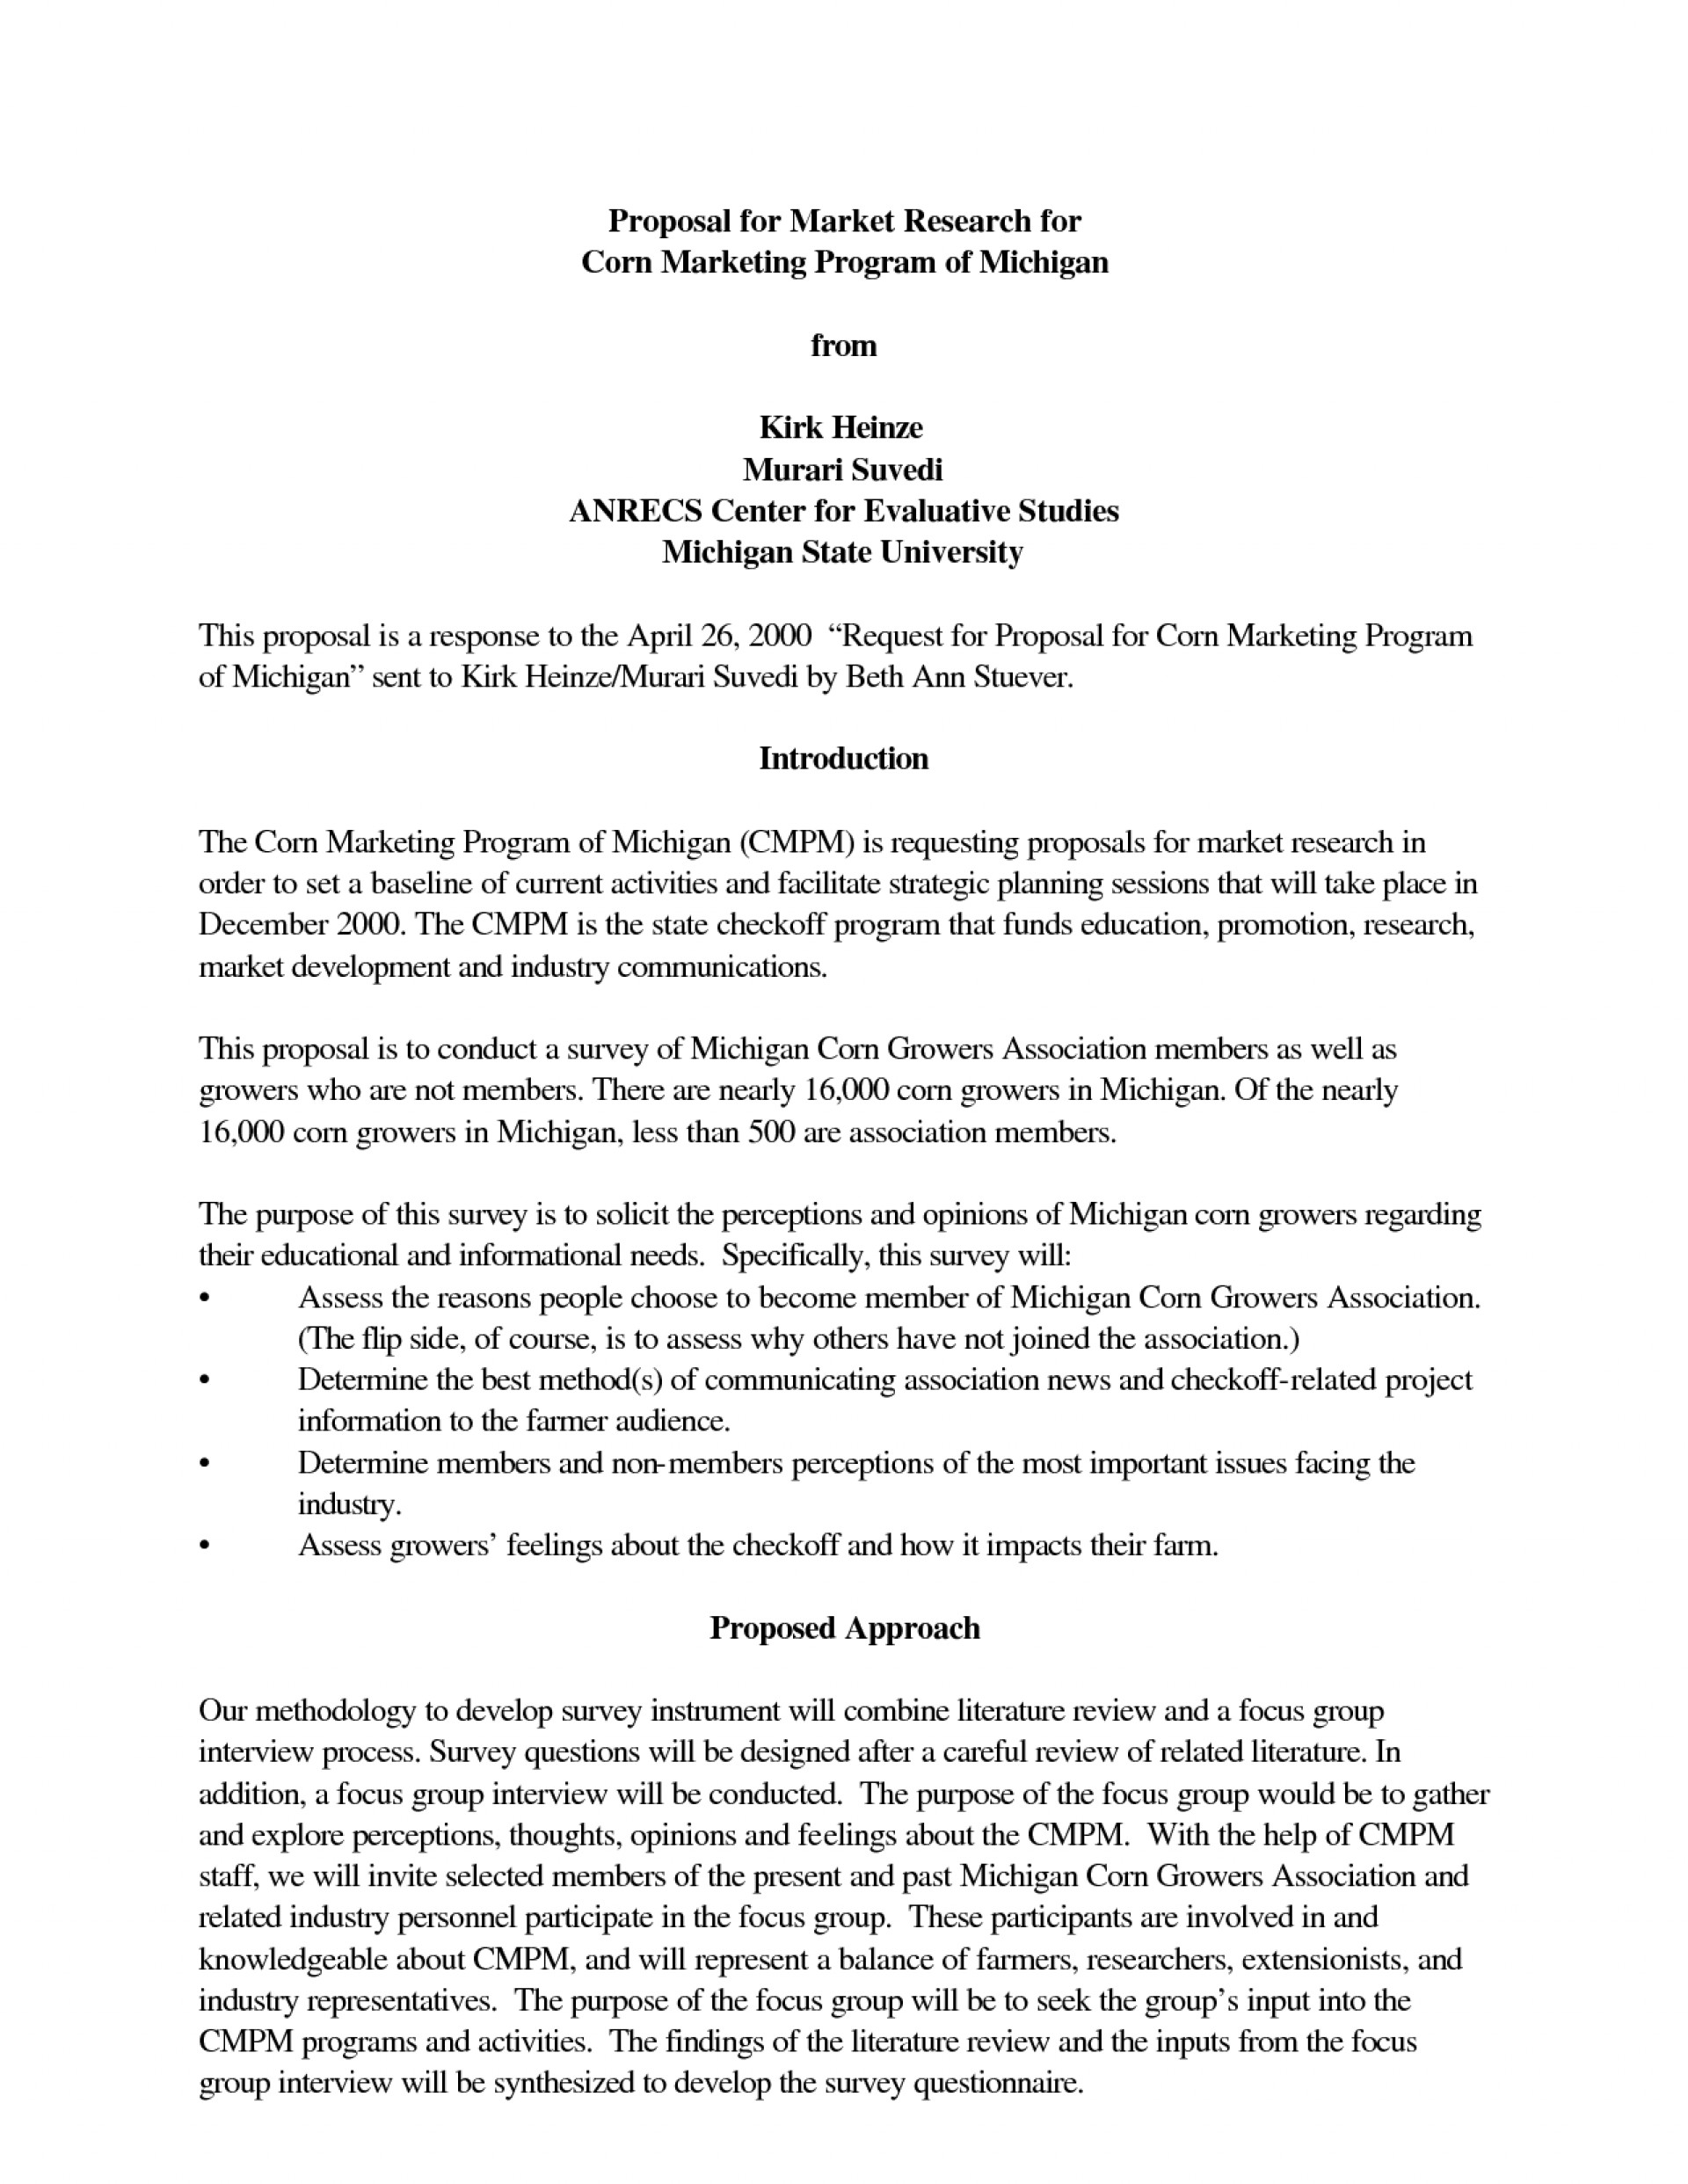 014 Business Marketing Proposal Samplemarketing Research Example 5fb7jaoh Paper How To Write An Introduction For Sensational A Psychology 1920